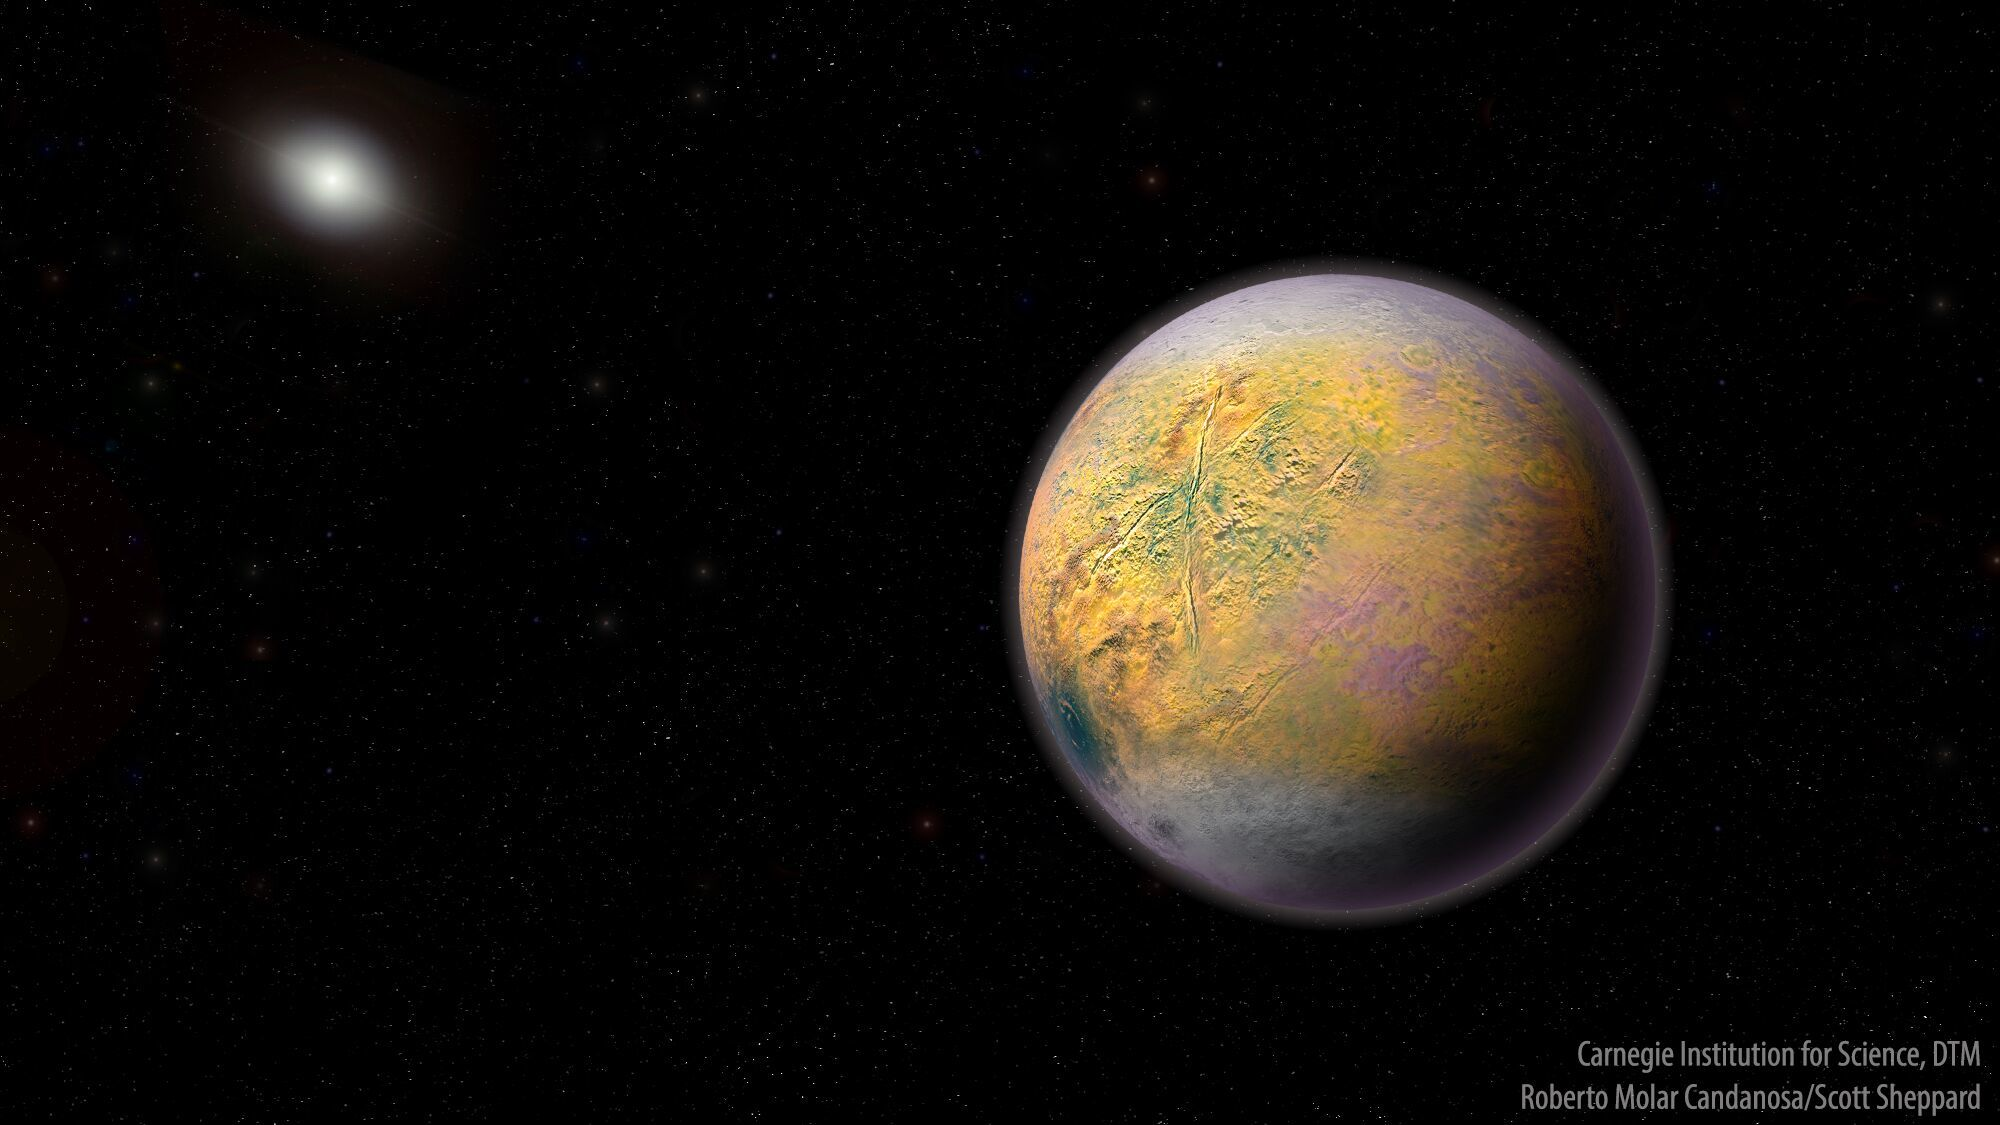 The Oort Cloud and the Kuiper Belt are the boundary bodies of the Solar System